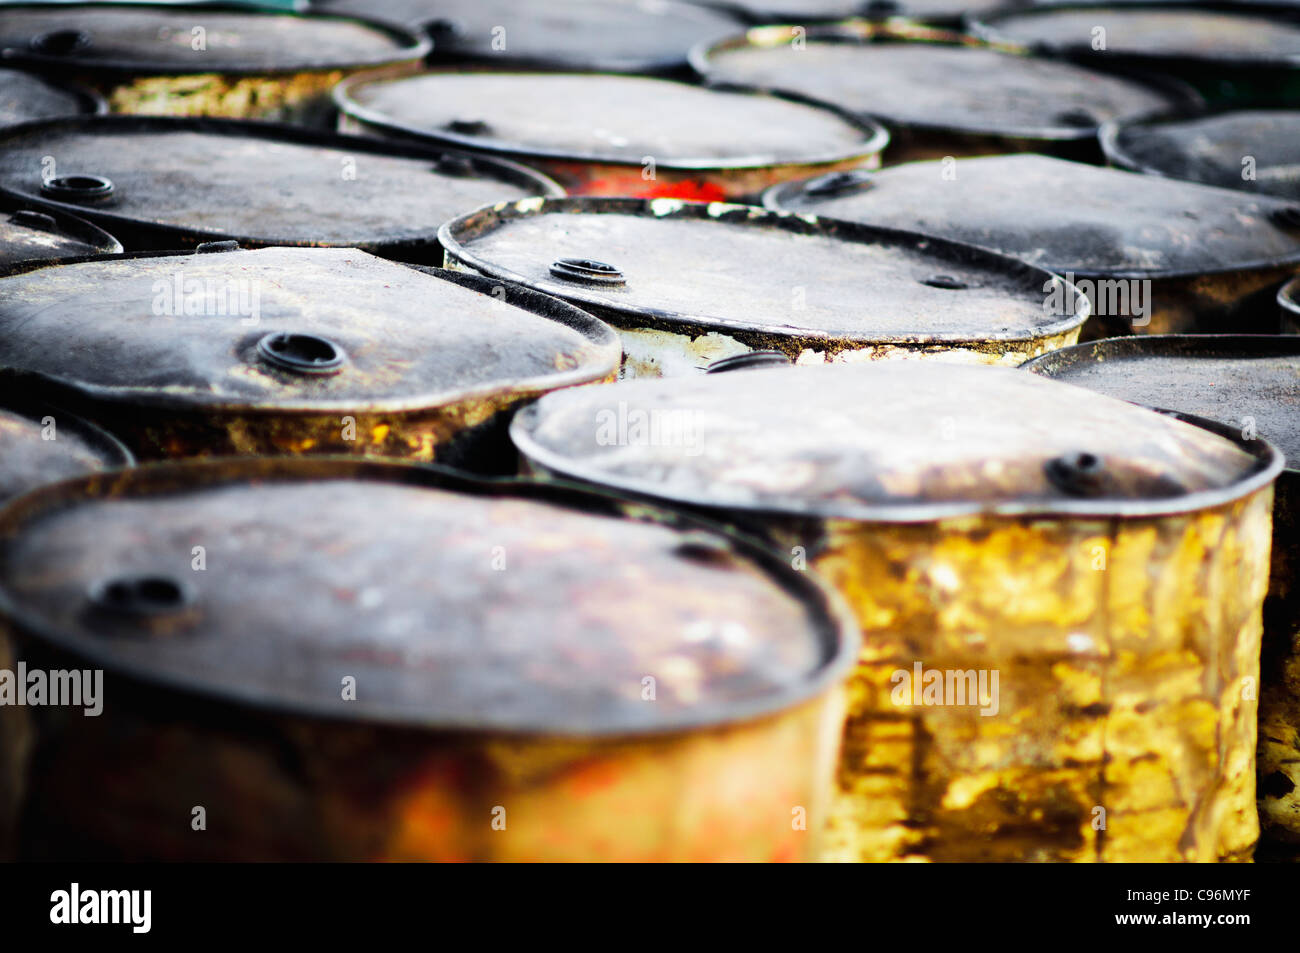 Old rusty oil barrels on the beach of Gili Meno in Indonesia - Stock Image